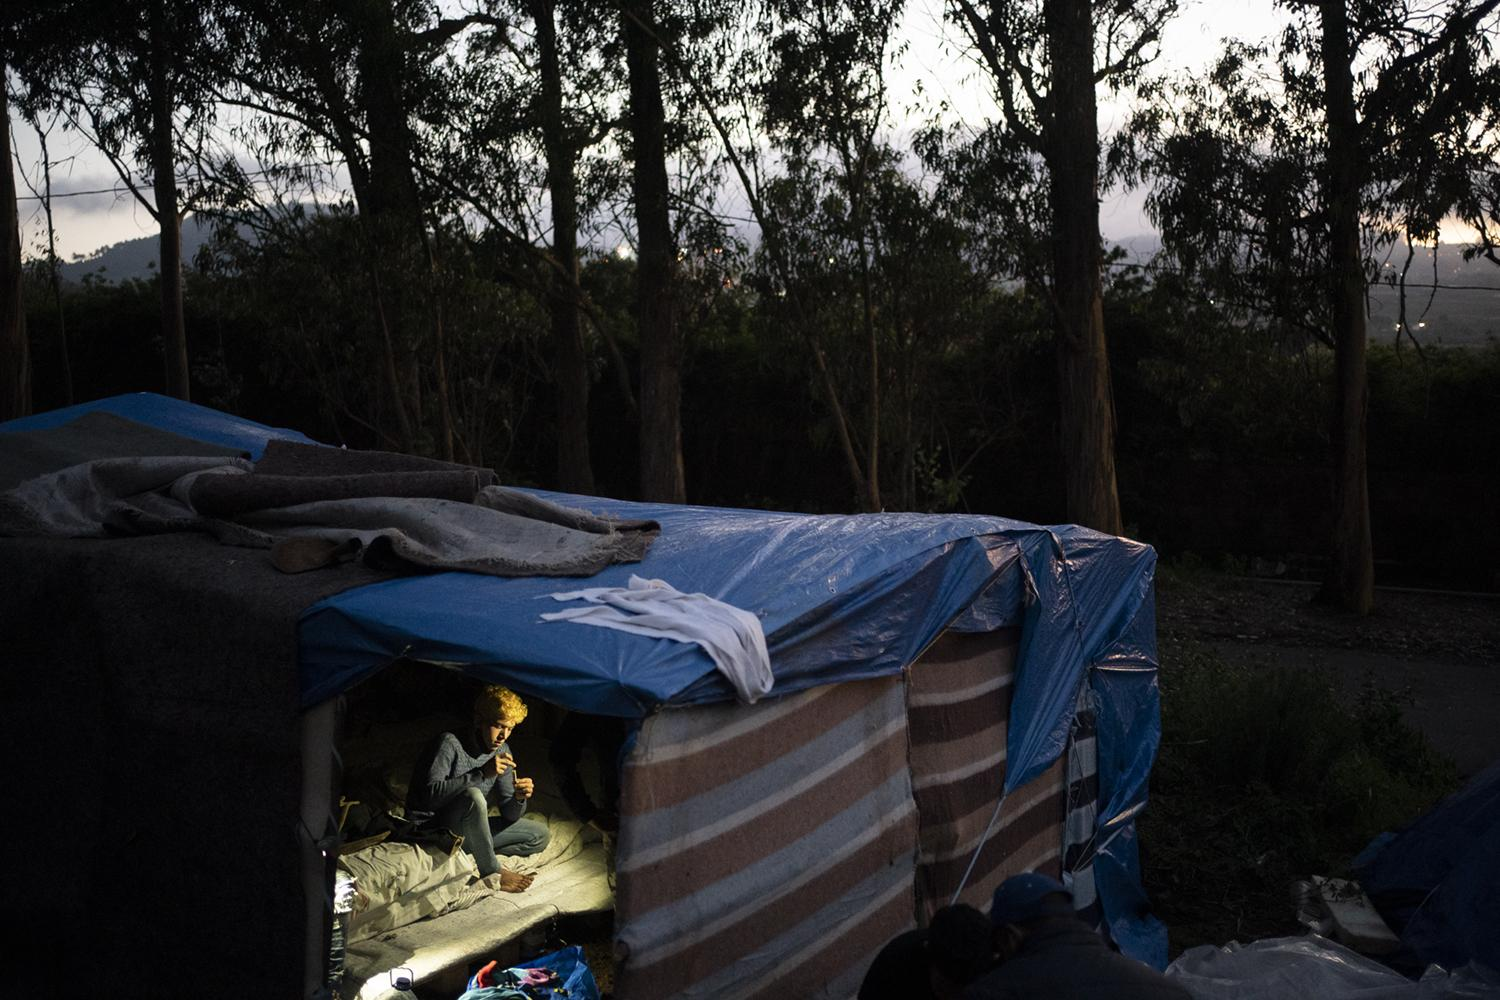 Ayoub, 22, from Morocco, rests in Las Raices camp in San Cristobal de la Laguna, in the Canary Island of Tenerife, Spain, Wednesday, March 17, 2021. Several thousand migrants have arrived on the Spanish archipelago in the first months of 2021. Due to the terrible living conditions and the poor quality of food and water at the Las Raices camp, some migrants have decided to leave the camp and sleep in shacks in a nearby forest instead. (AP Photo/Joan Mateu)